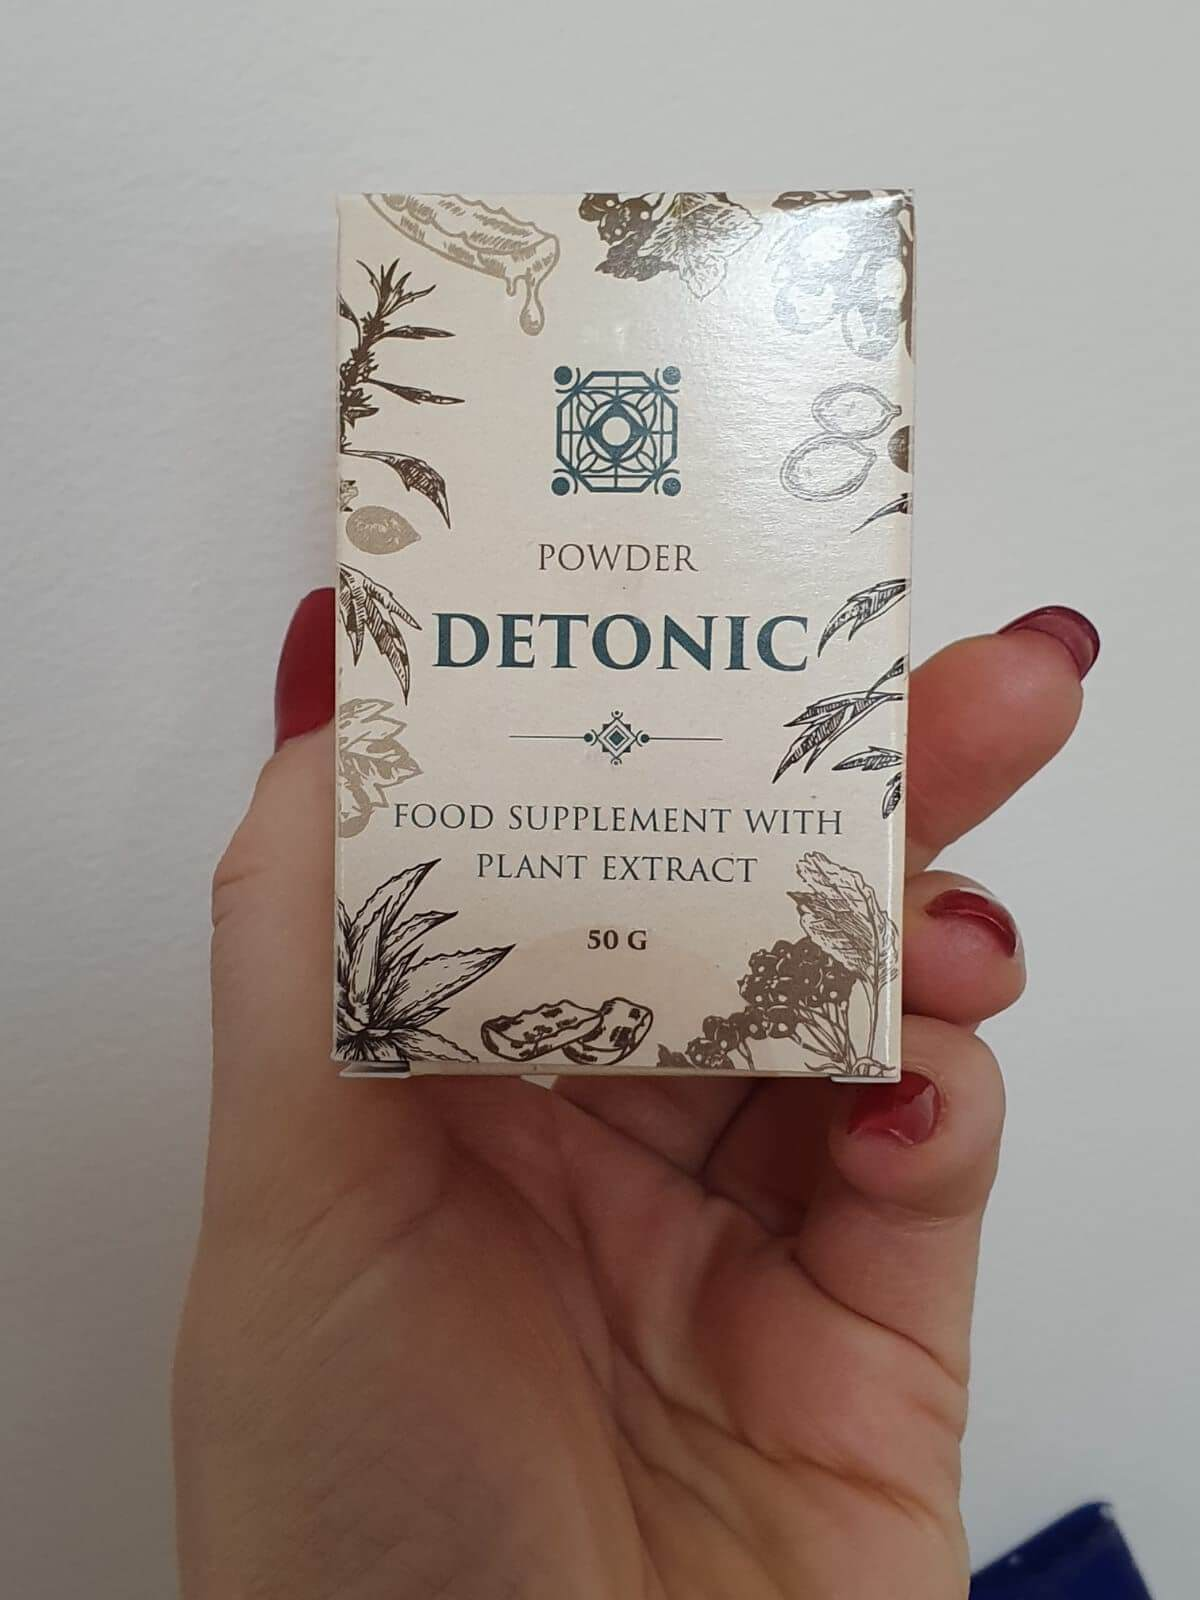 Detonic How to use?